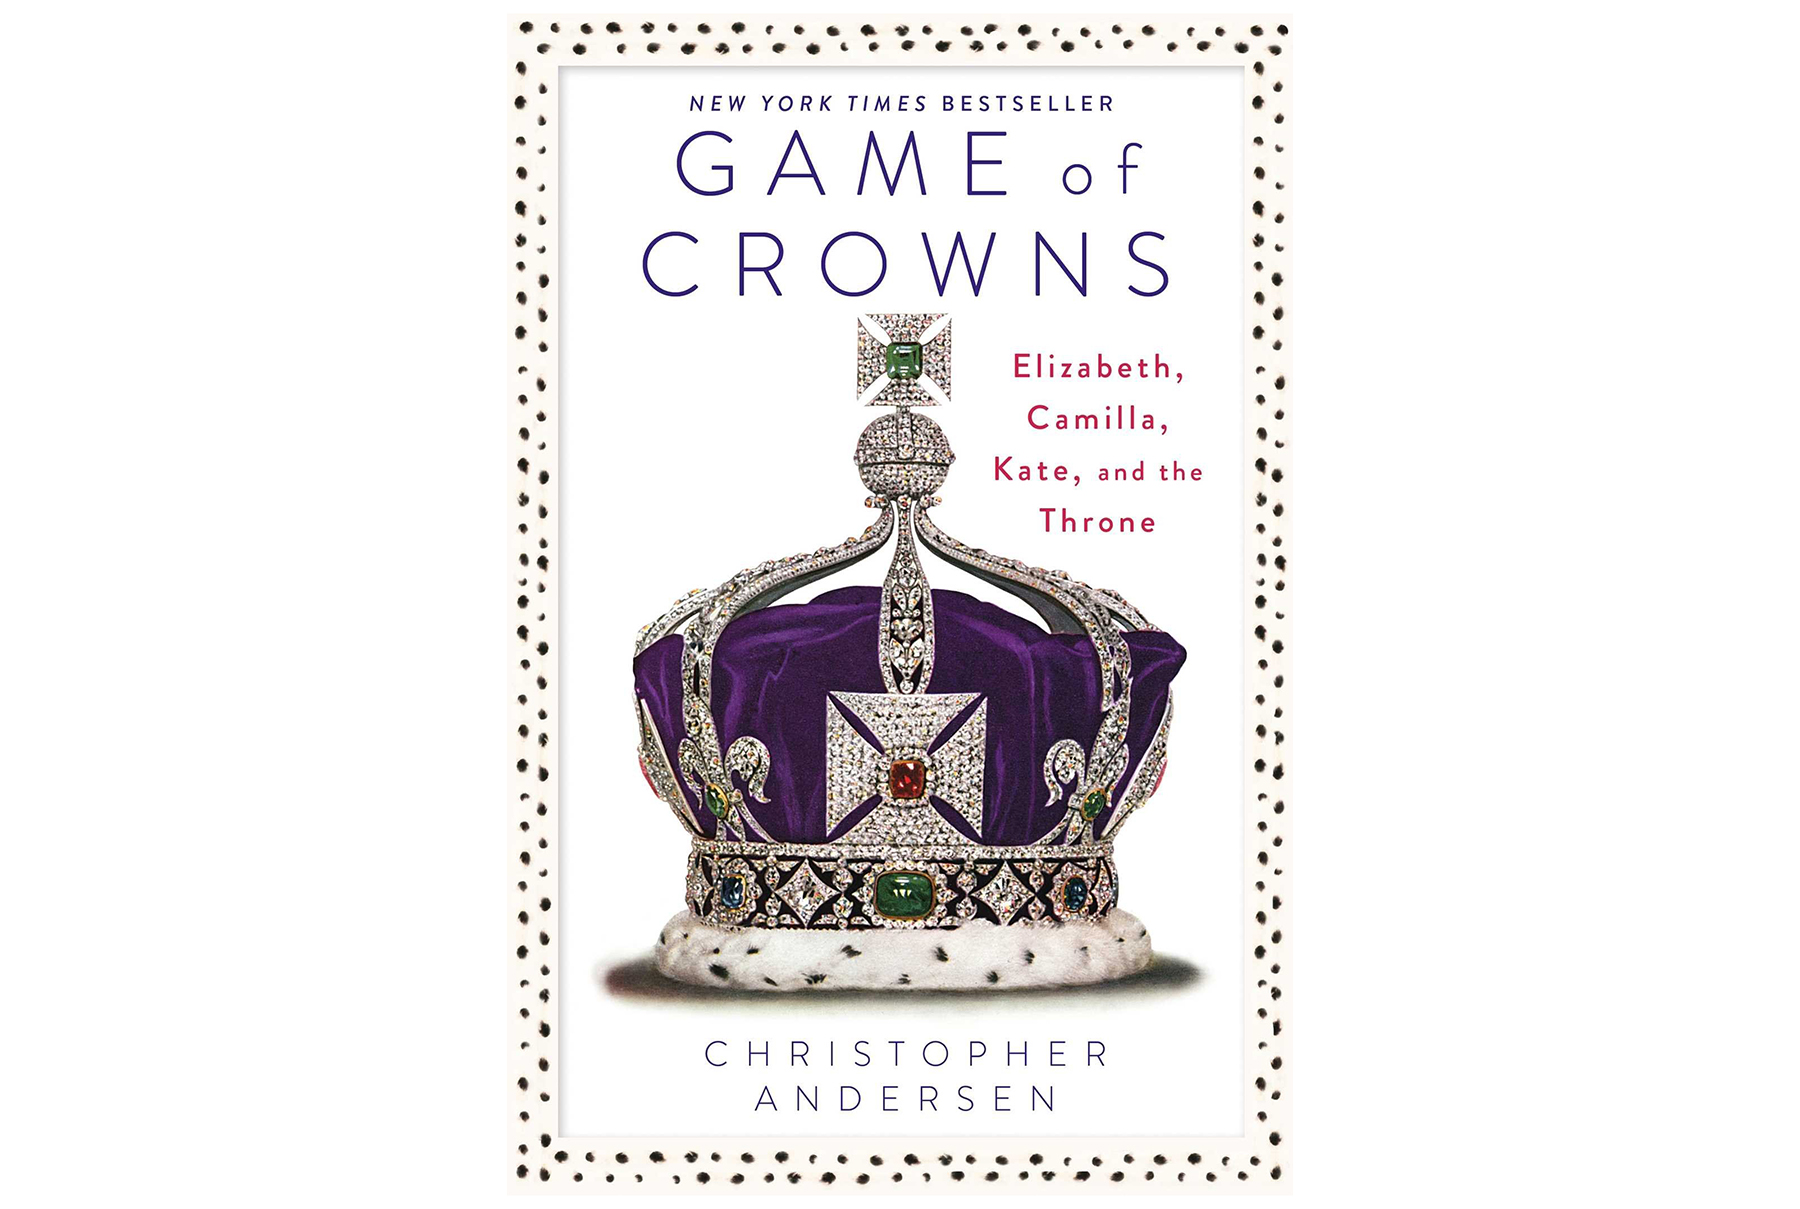 Game of Crowns: Elizabeth, Camilla, Kate, and the Throne, by Christopher Anderson